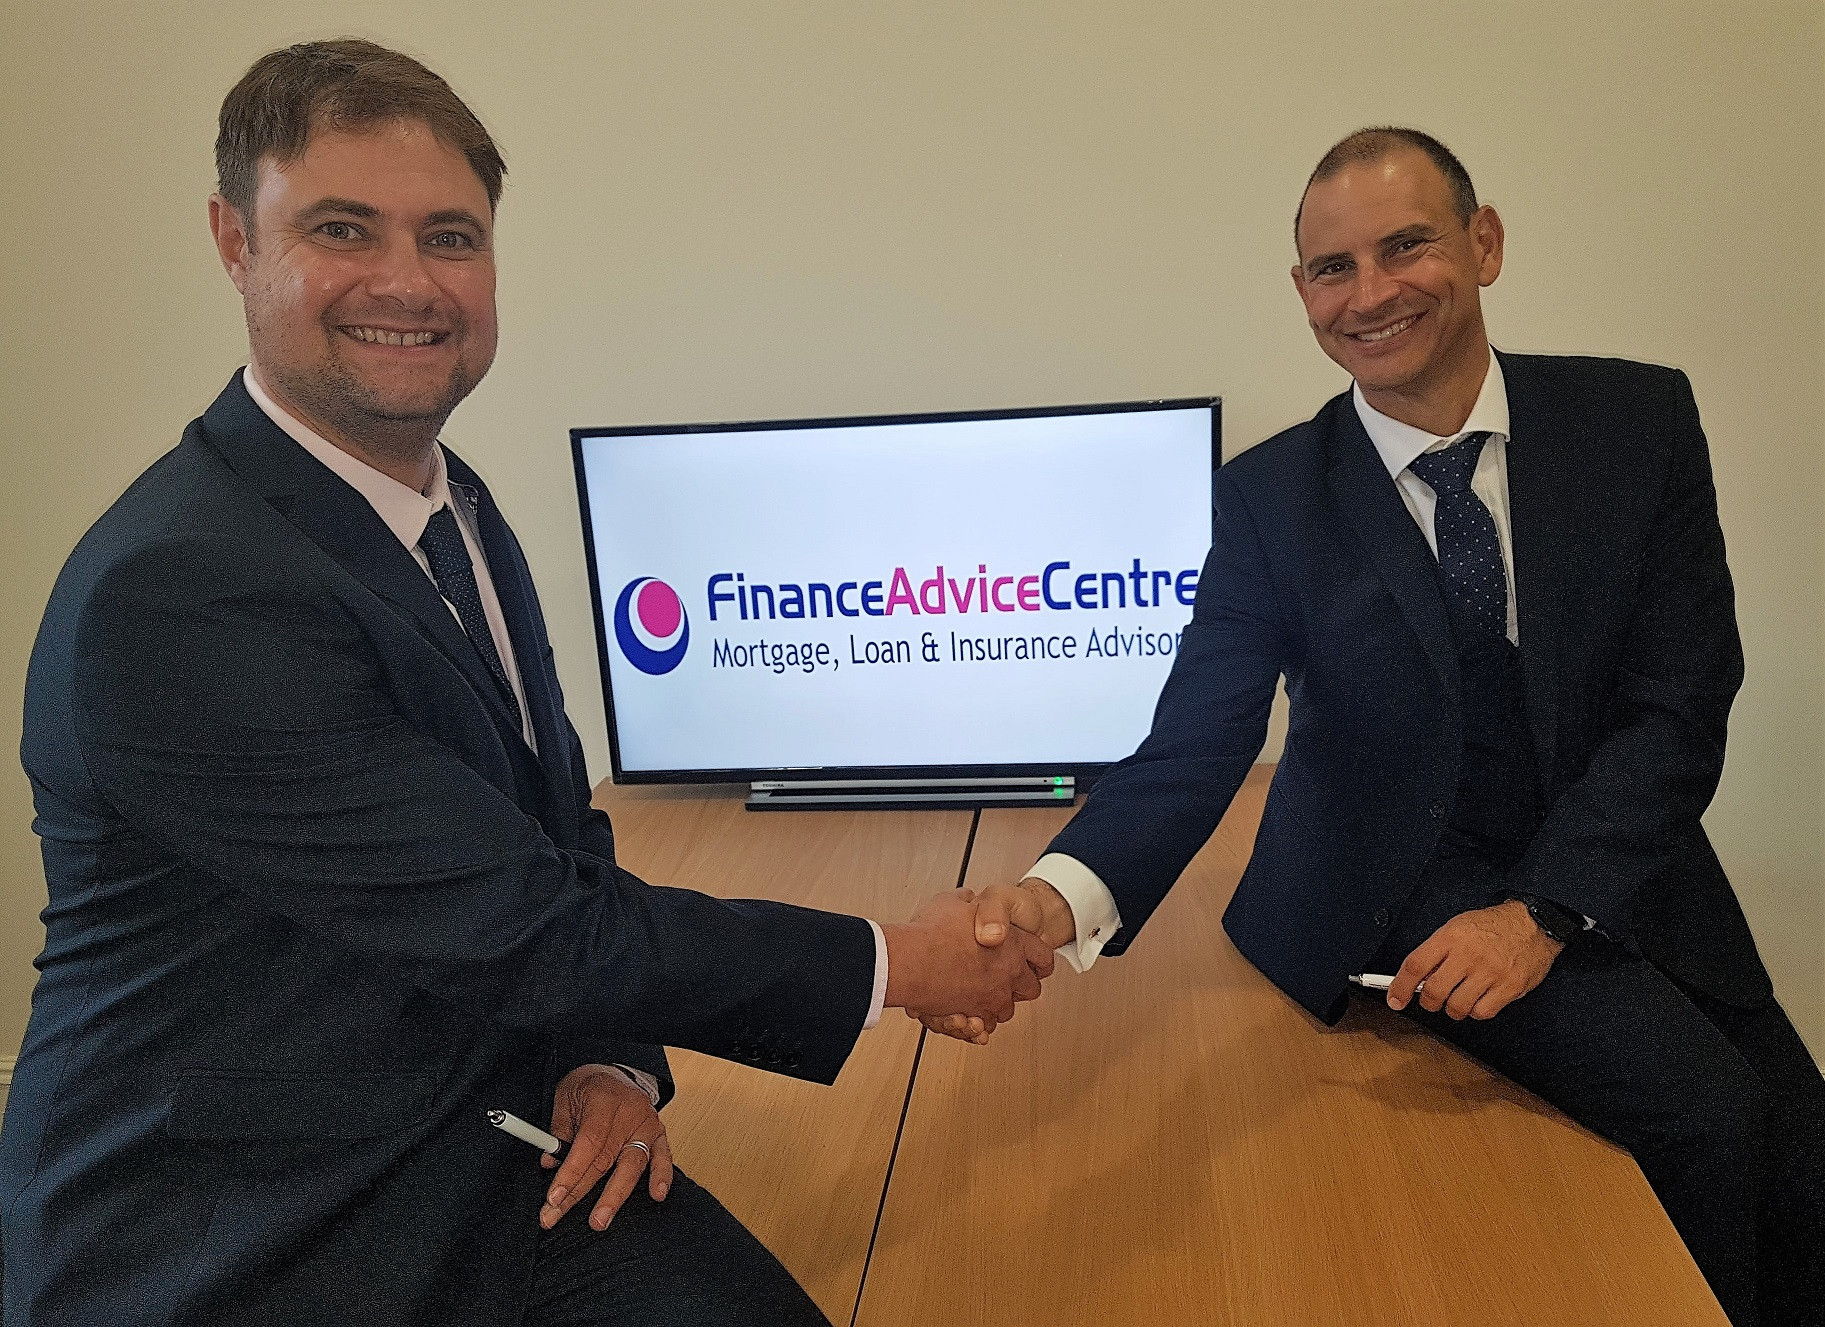 Picture shows: Dave Smit (left) shakes hands with Finance Advice Group's managing director Matt Cassar following the launch of the company's second Finance Advice Centre outlet in Ilkeston. Penguin PR: public relations, media and communications